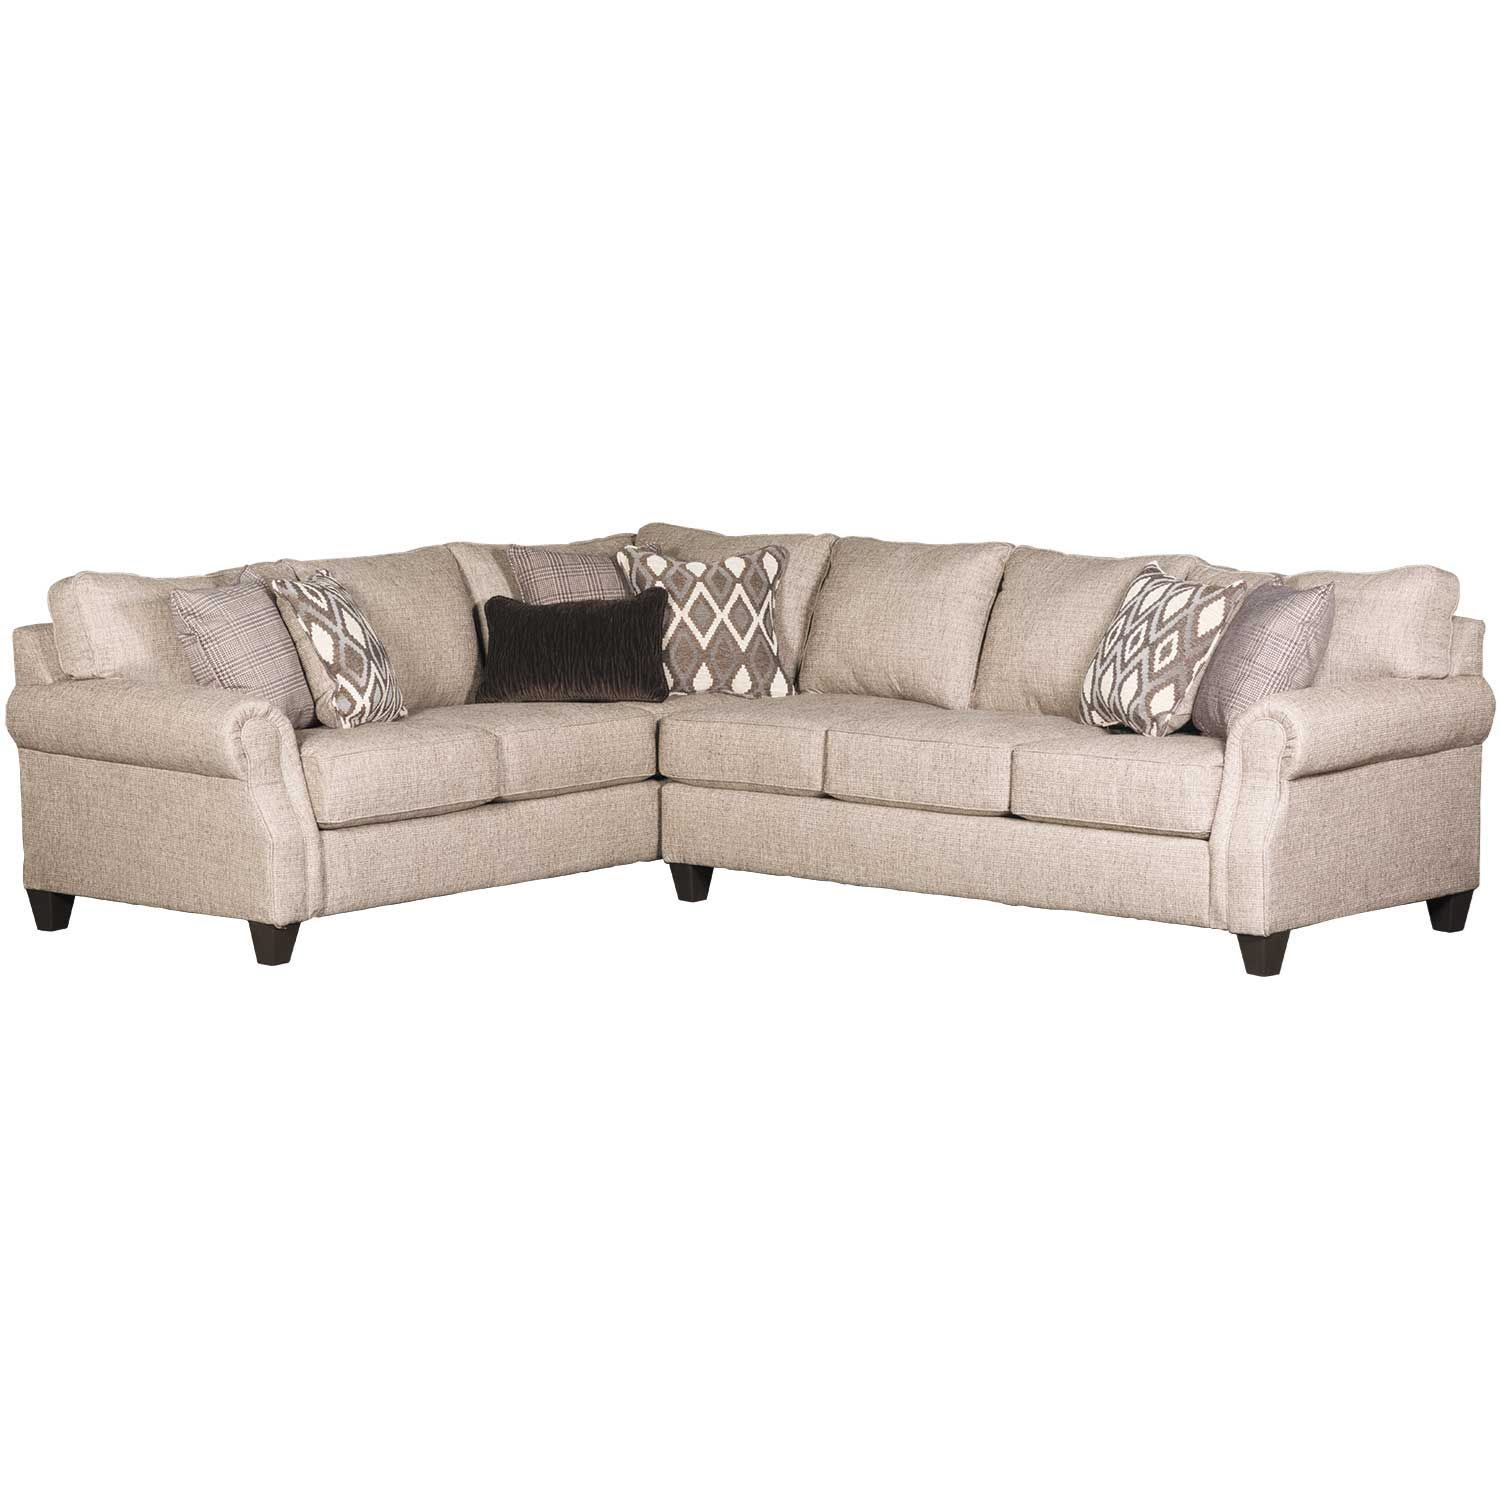 OConnor Clove 2 Piece Sectional